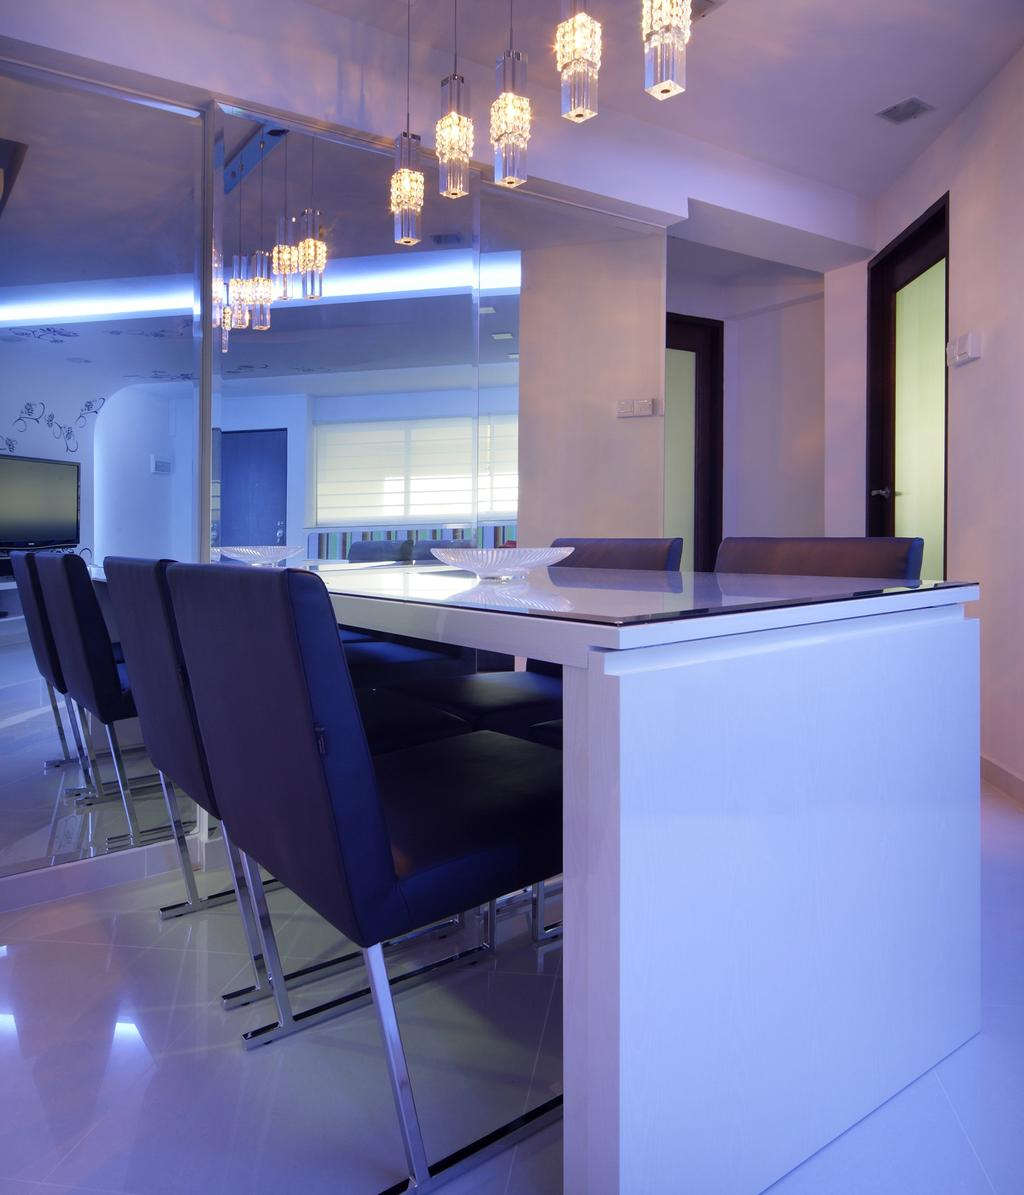 Transitional, HDB, Dining Room, Hougang Avenue 2, Interior Designer, Chapter One Interior Design, Full Length Mirror, Table, Dining Table, Hanging Light, Lighting, Pendant Light, White, Chair, Furniture, Conference Room, Indoors, Meeting Room, Room